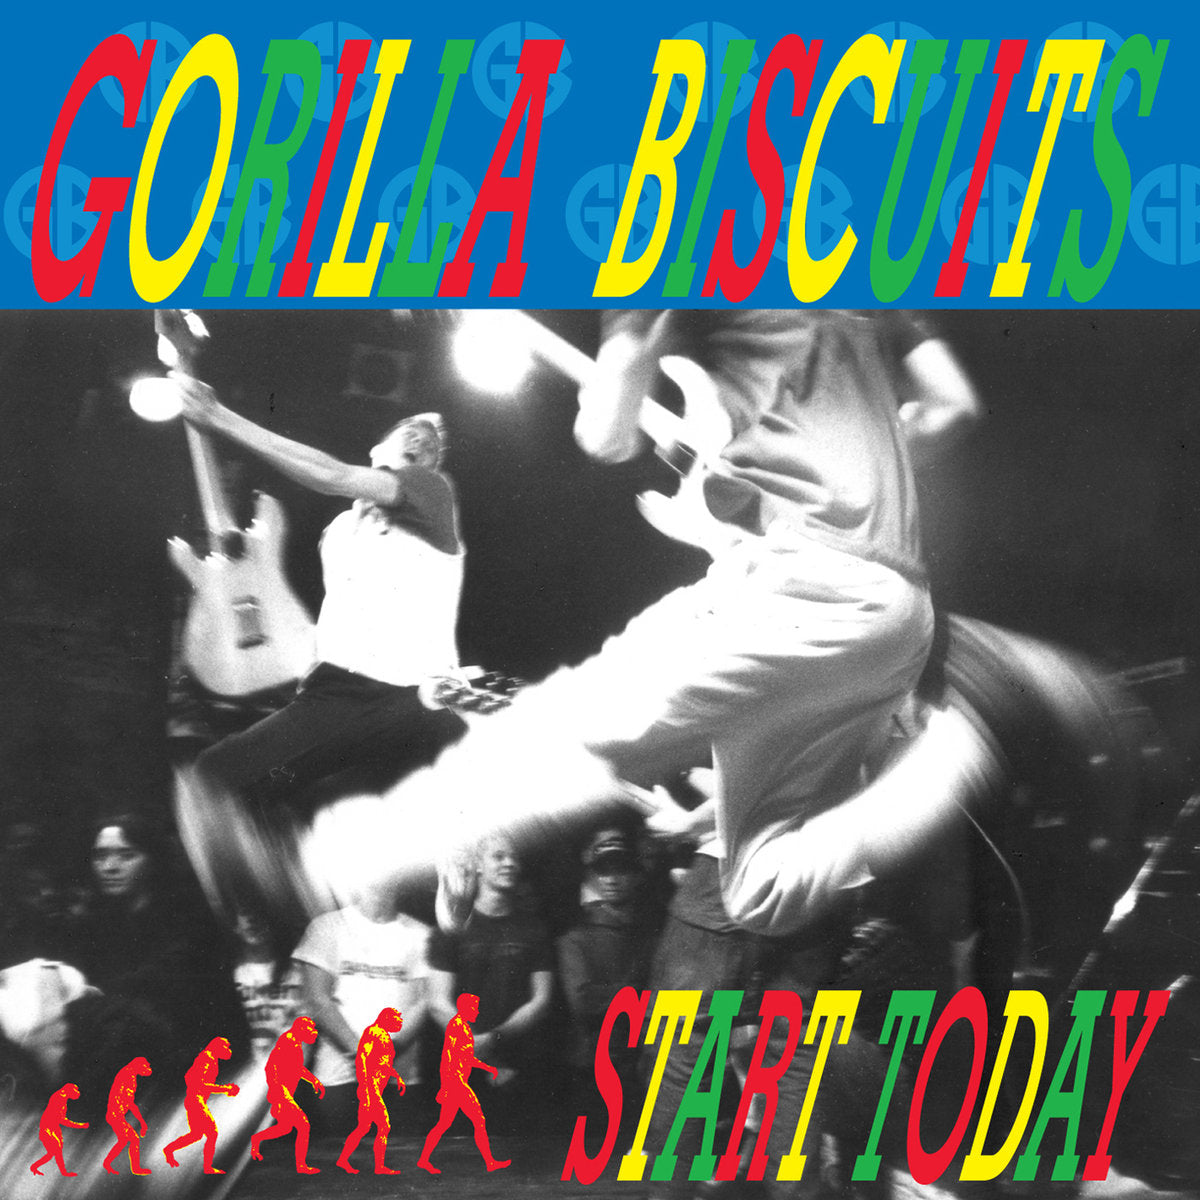 Gorilla Biscuits - Start Today LP - Vinyl